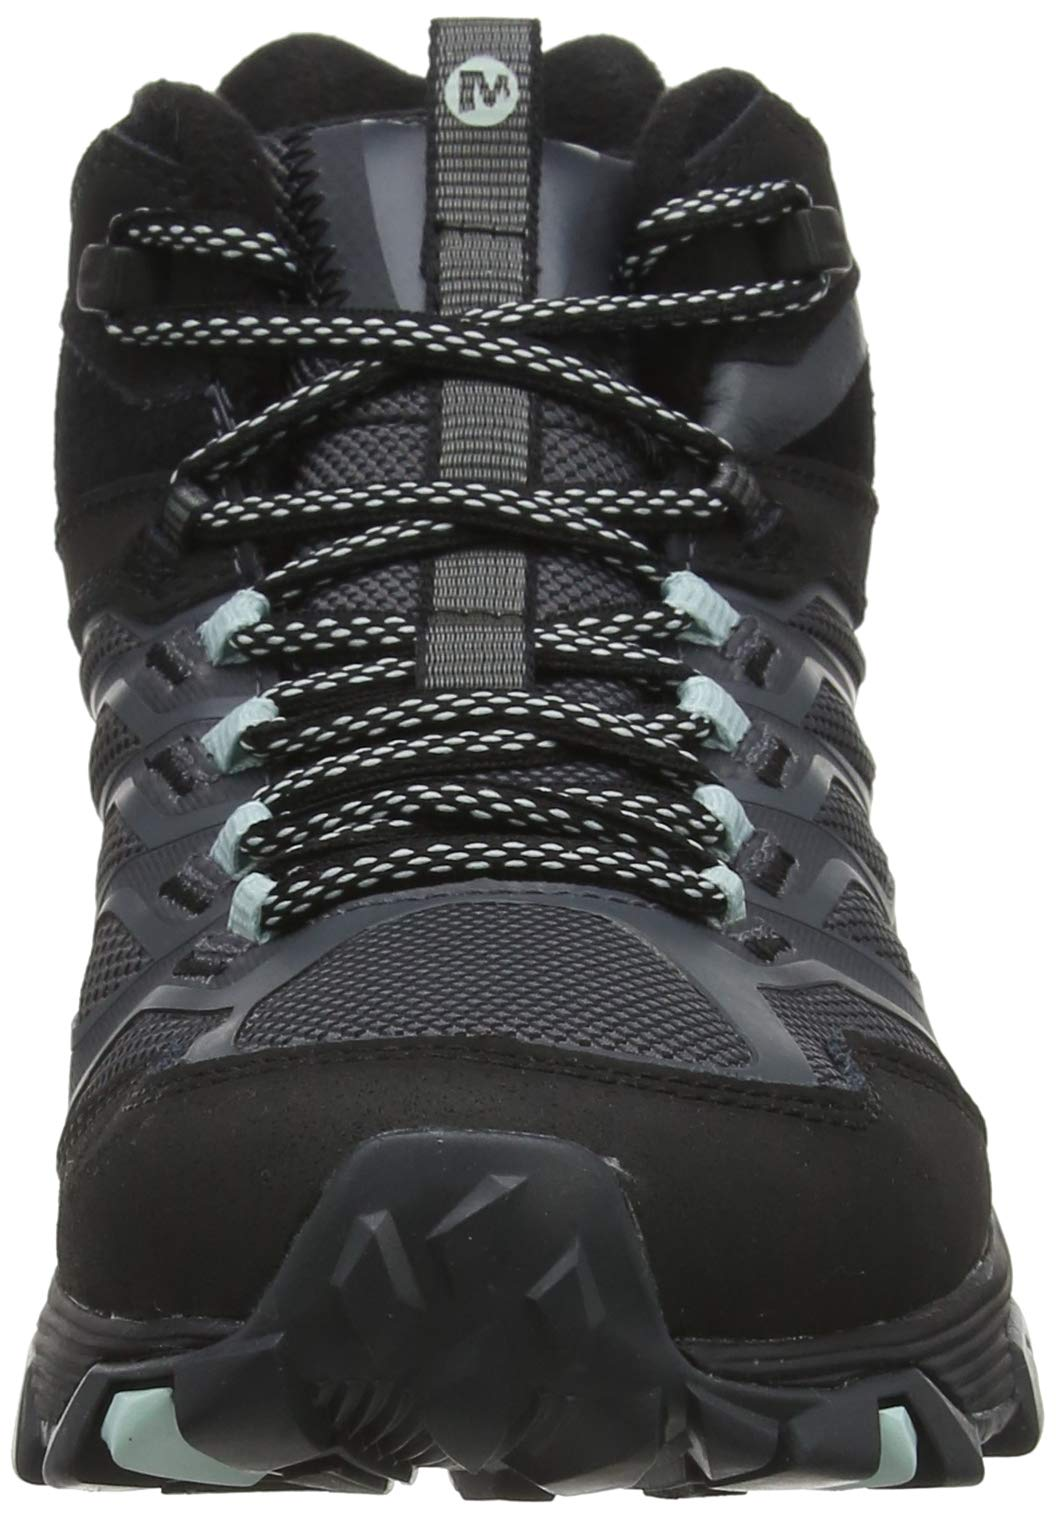 71WMNlYenXL - Merrell Women's Moab FST Ice+ Thermo High Rise Hiking Boots